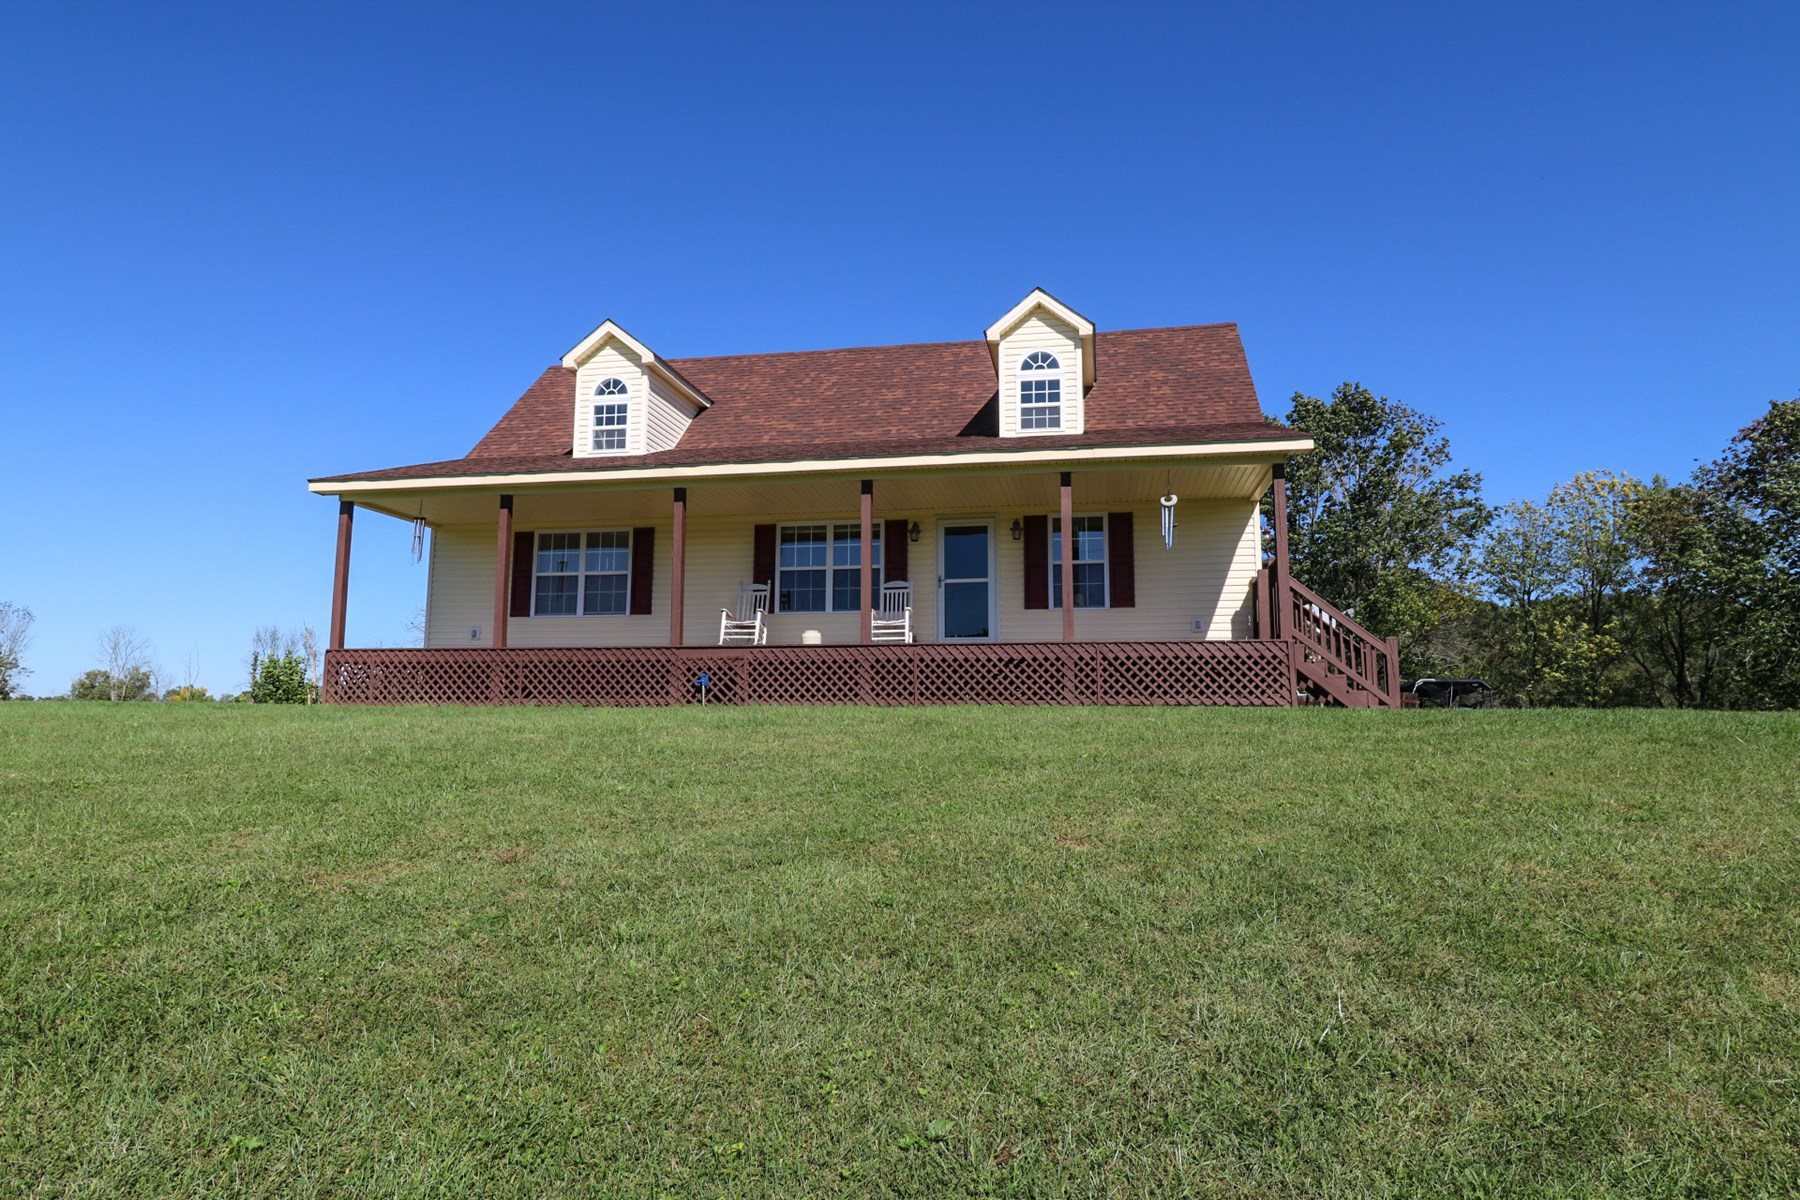 Kentucky Country home for sale w/ barn and 45+ acres